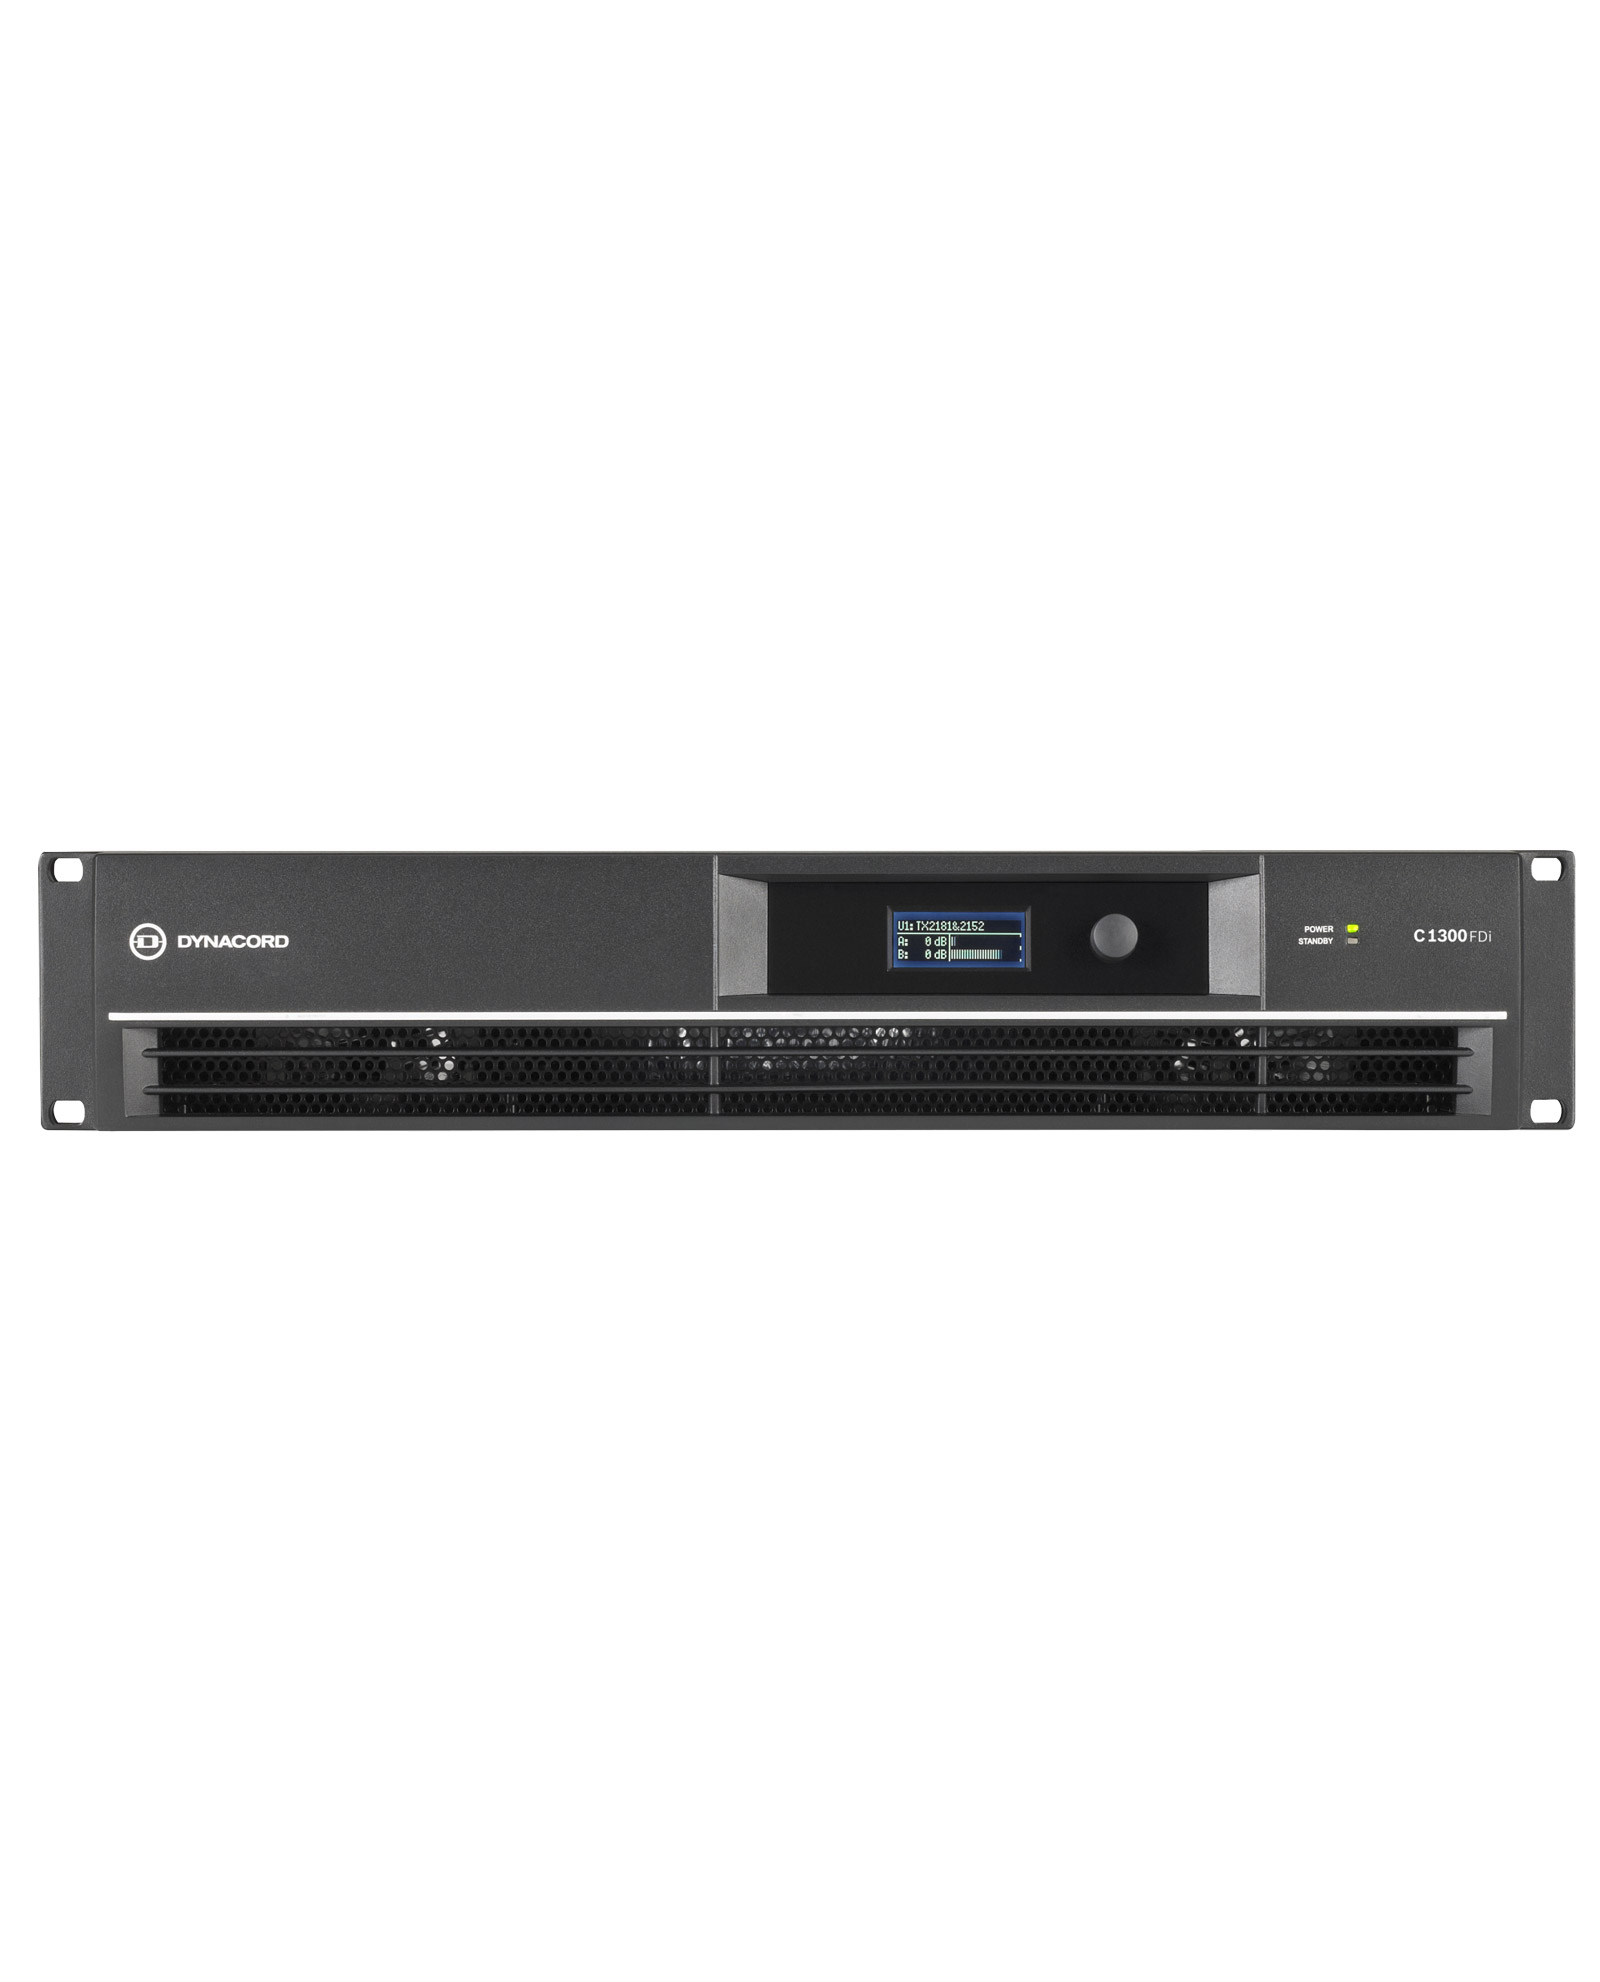 Dynacord C1300fdi Dsp 2x650w Power Amplifier